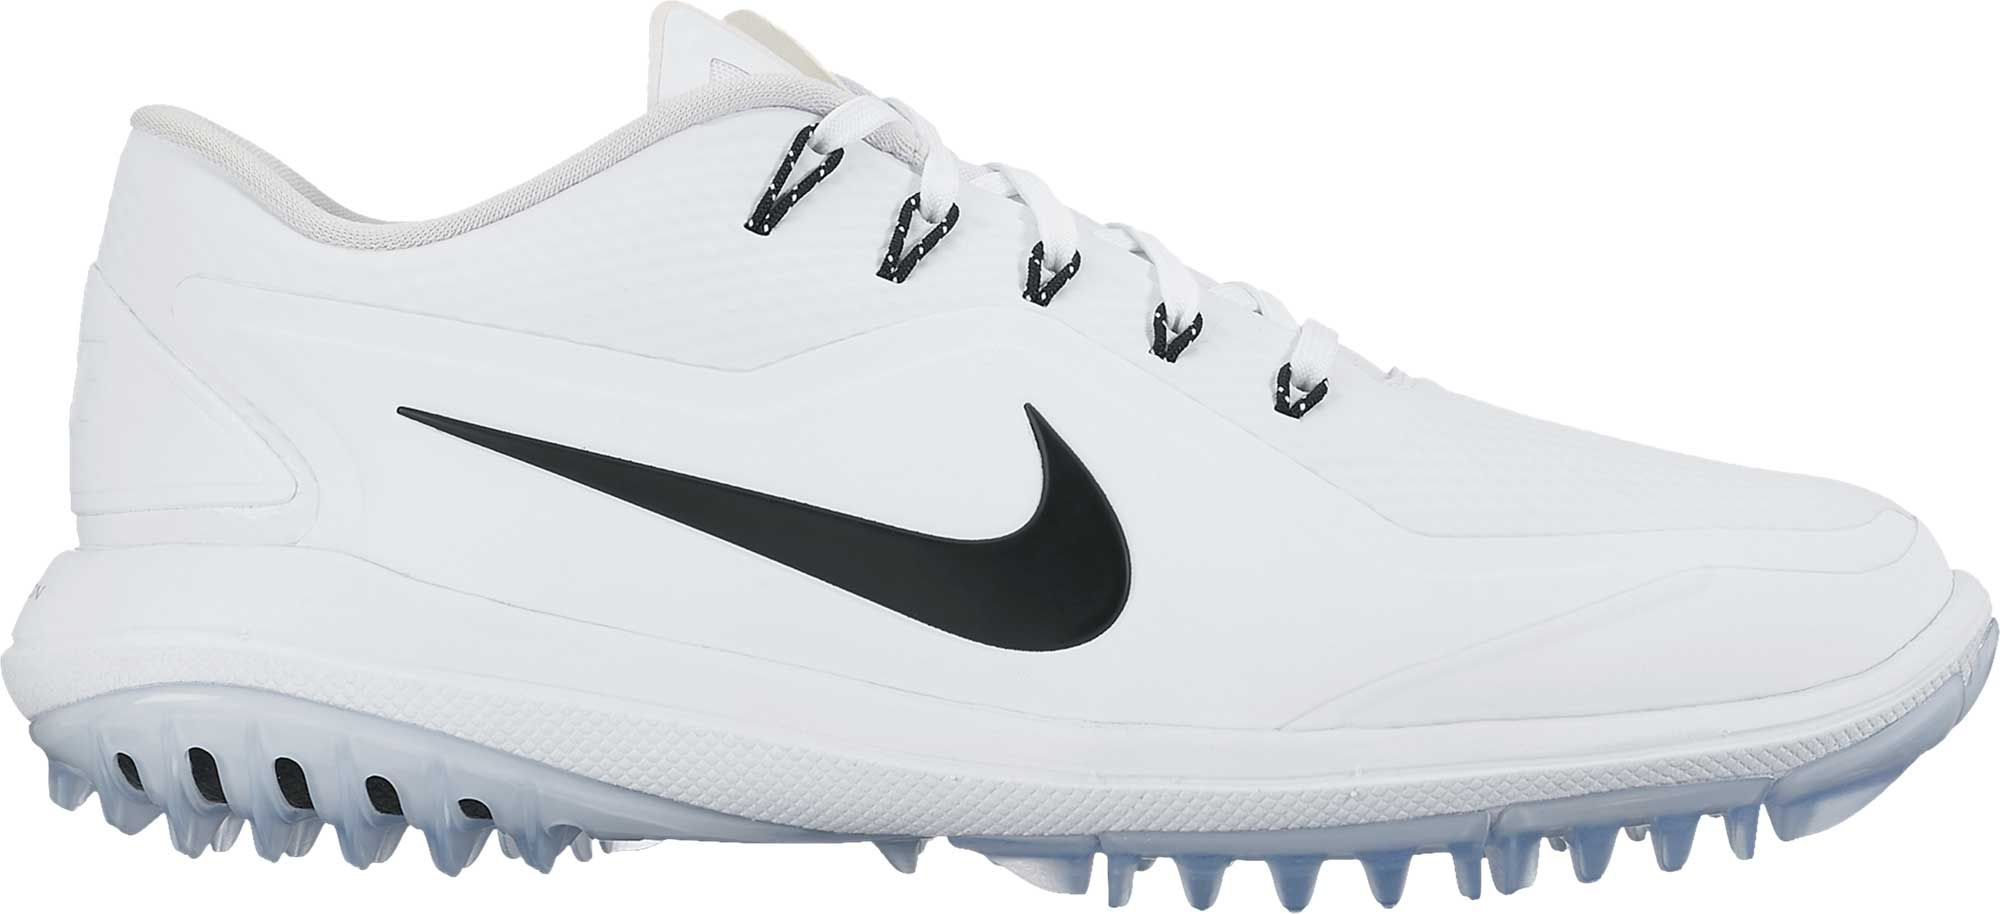 Product Image �� Nike Women\u0027s Lunar Control Vapor 2 Golf Shoes